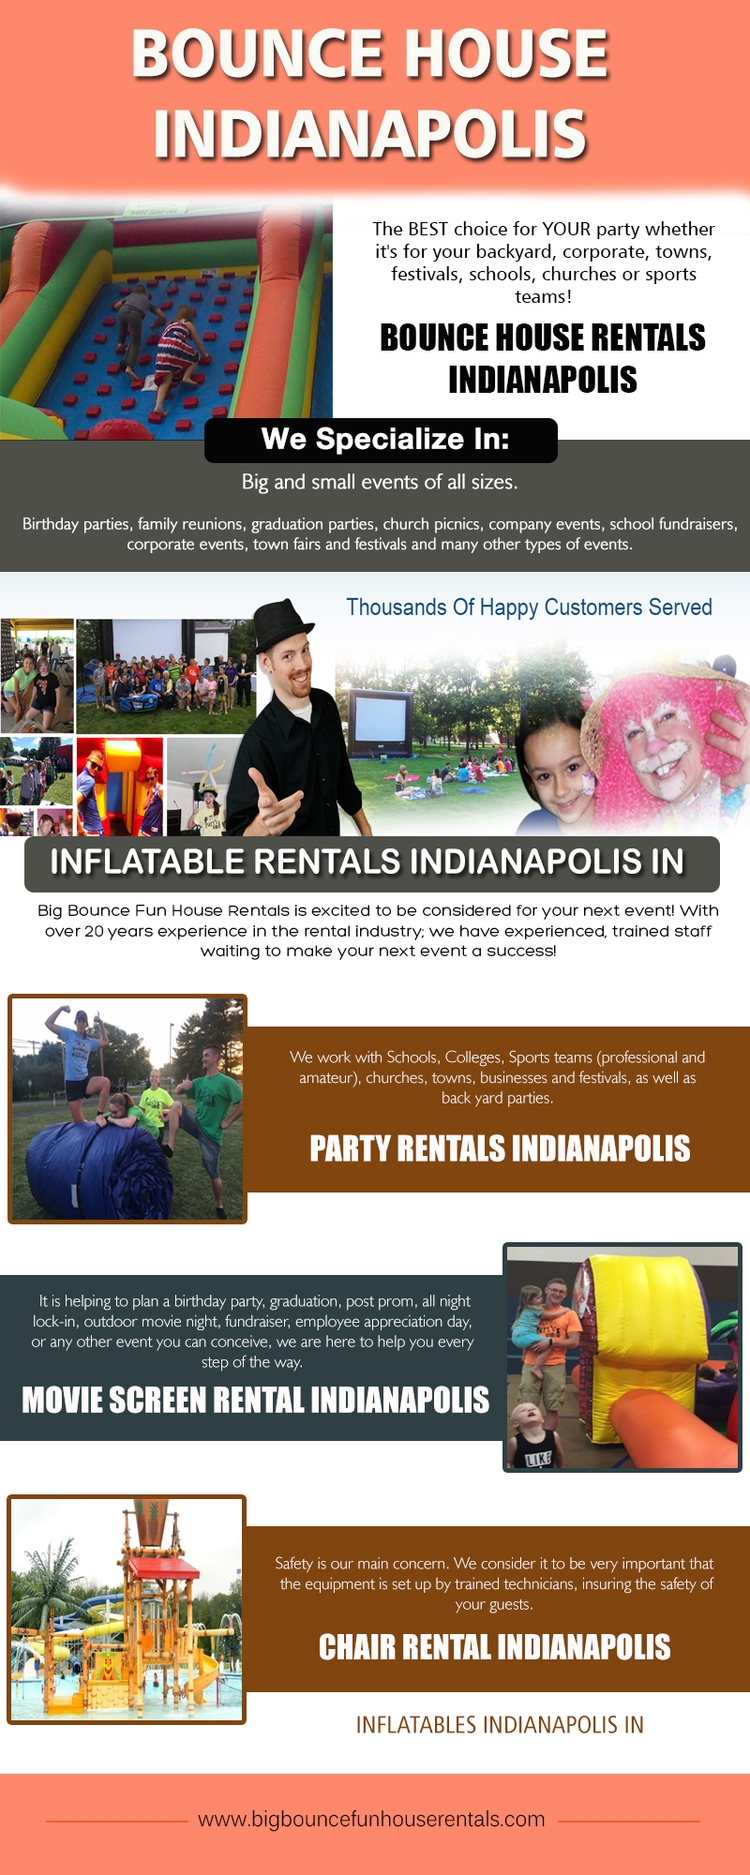 Bounce House Rentals Indianapol - inflatablesparty   ello